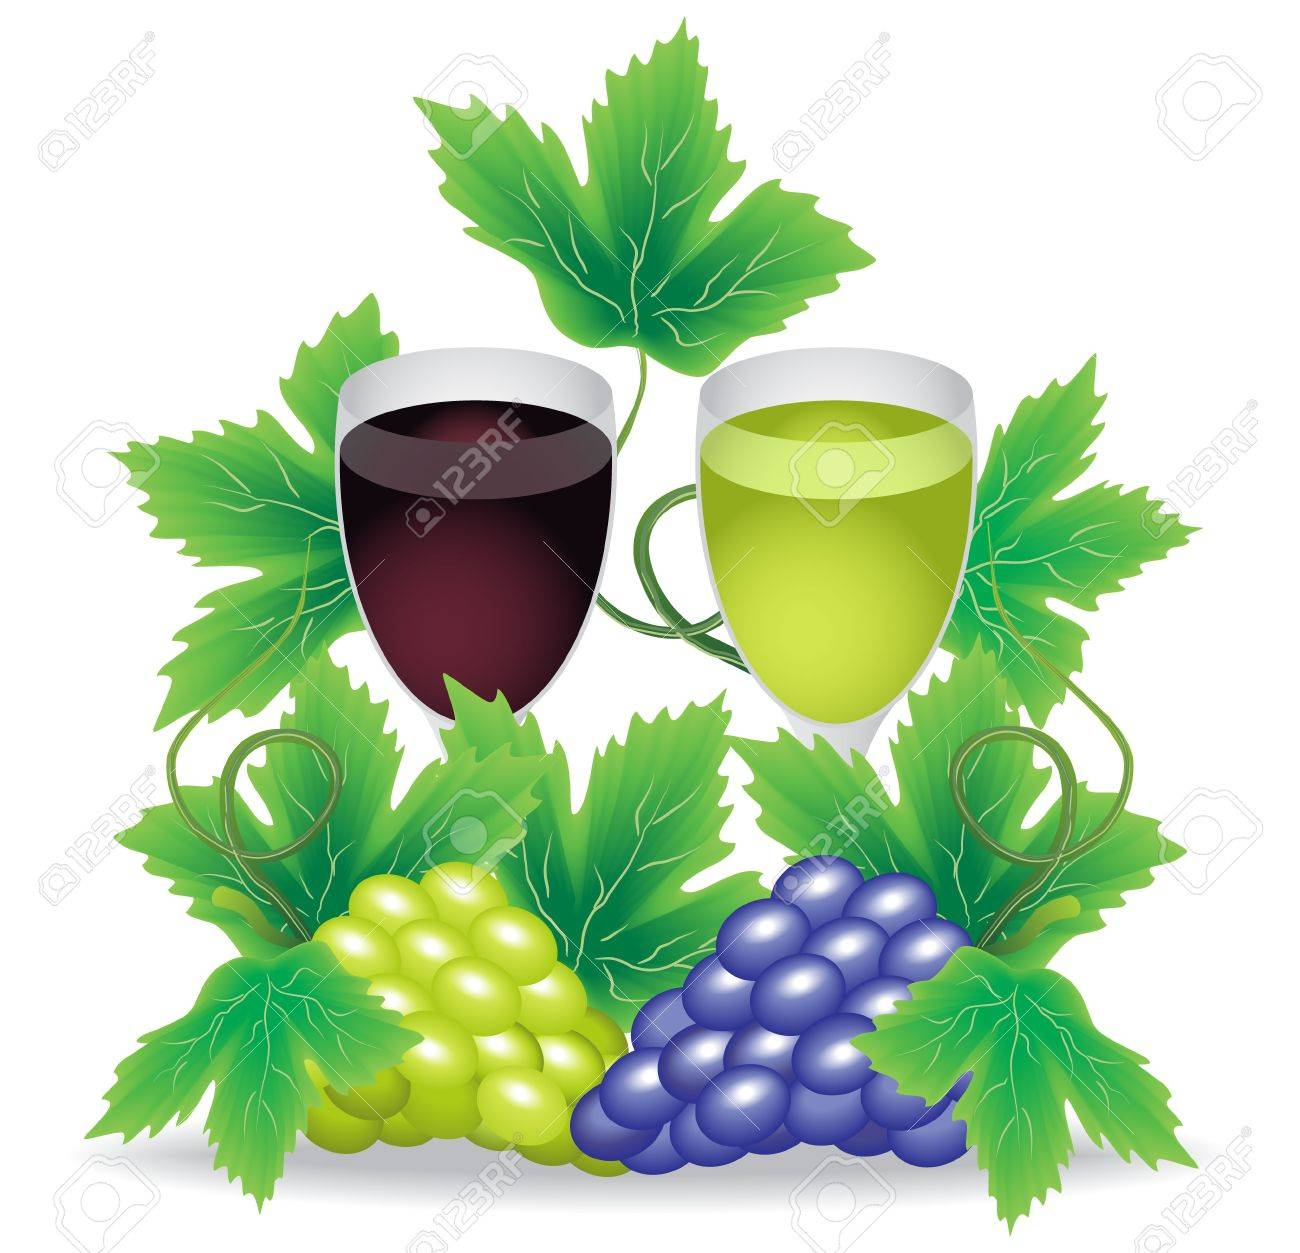 glasses of red and white wine grapes on a background of green and red grapes Stock Vector - 13308728